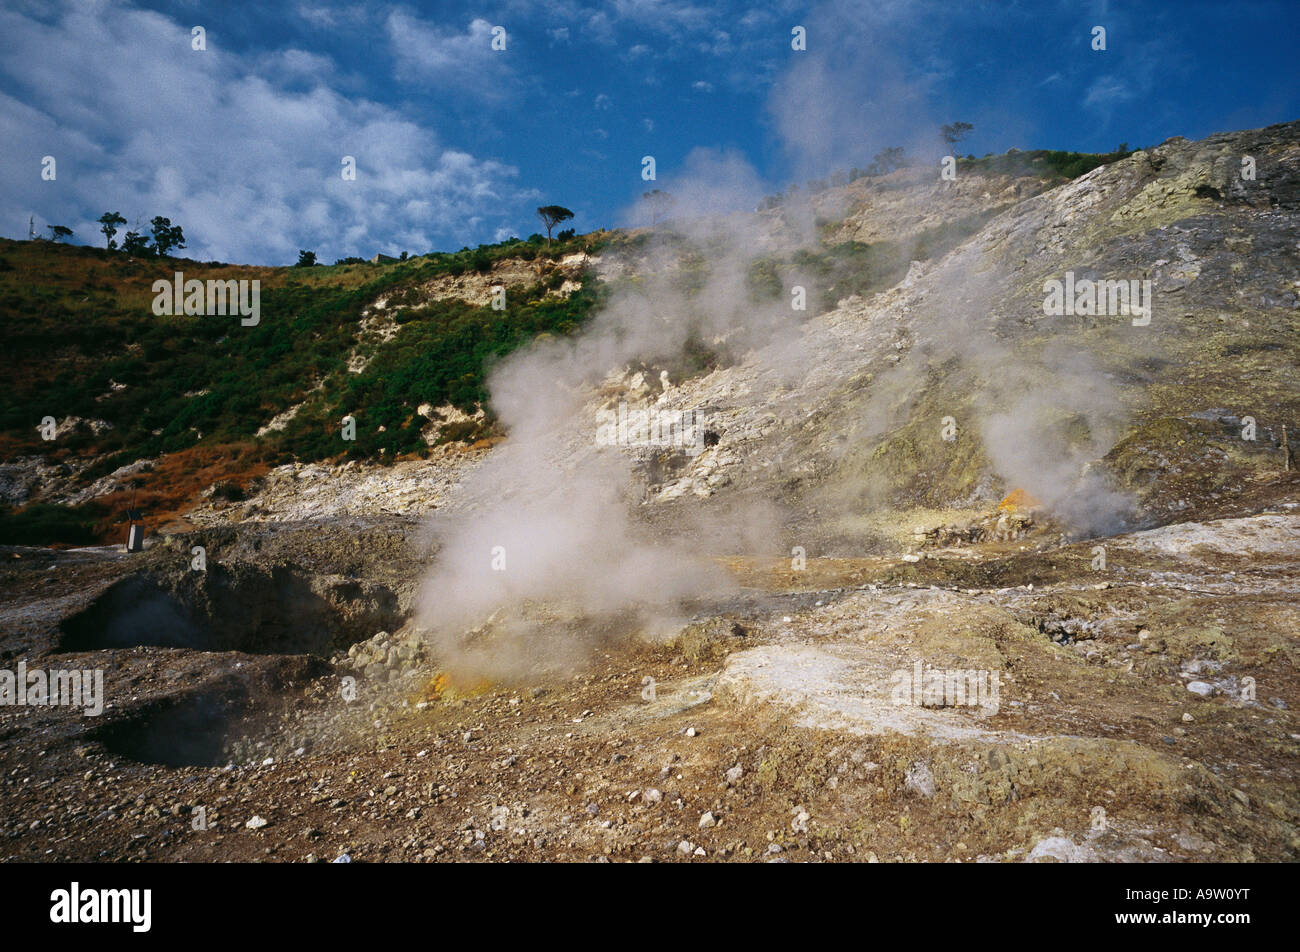 Pozzuoli Campania Italy Sulphurous steam rises up through the ground at the Solfatara active volcanic crater - Stock Image